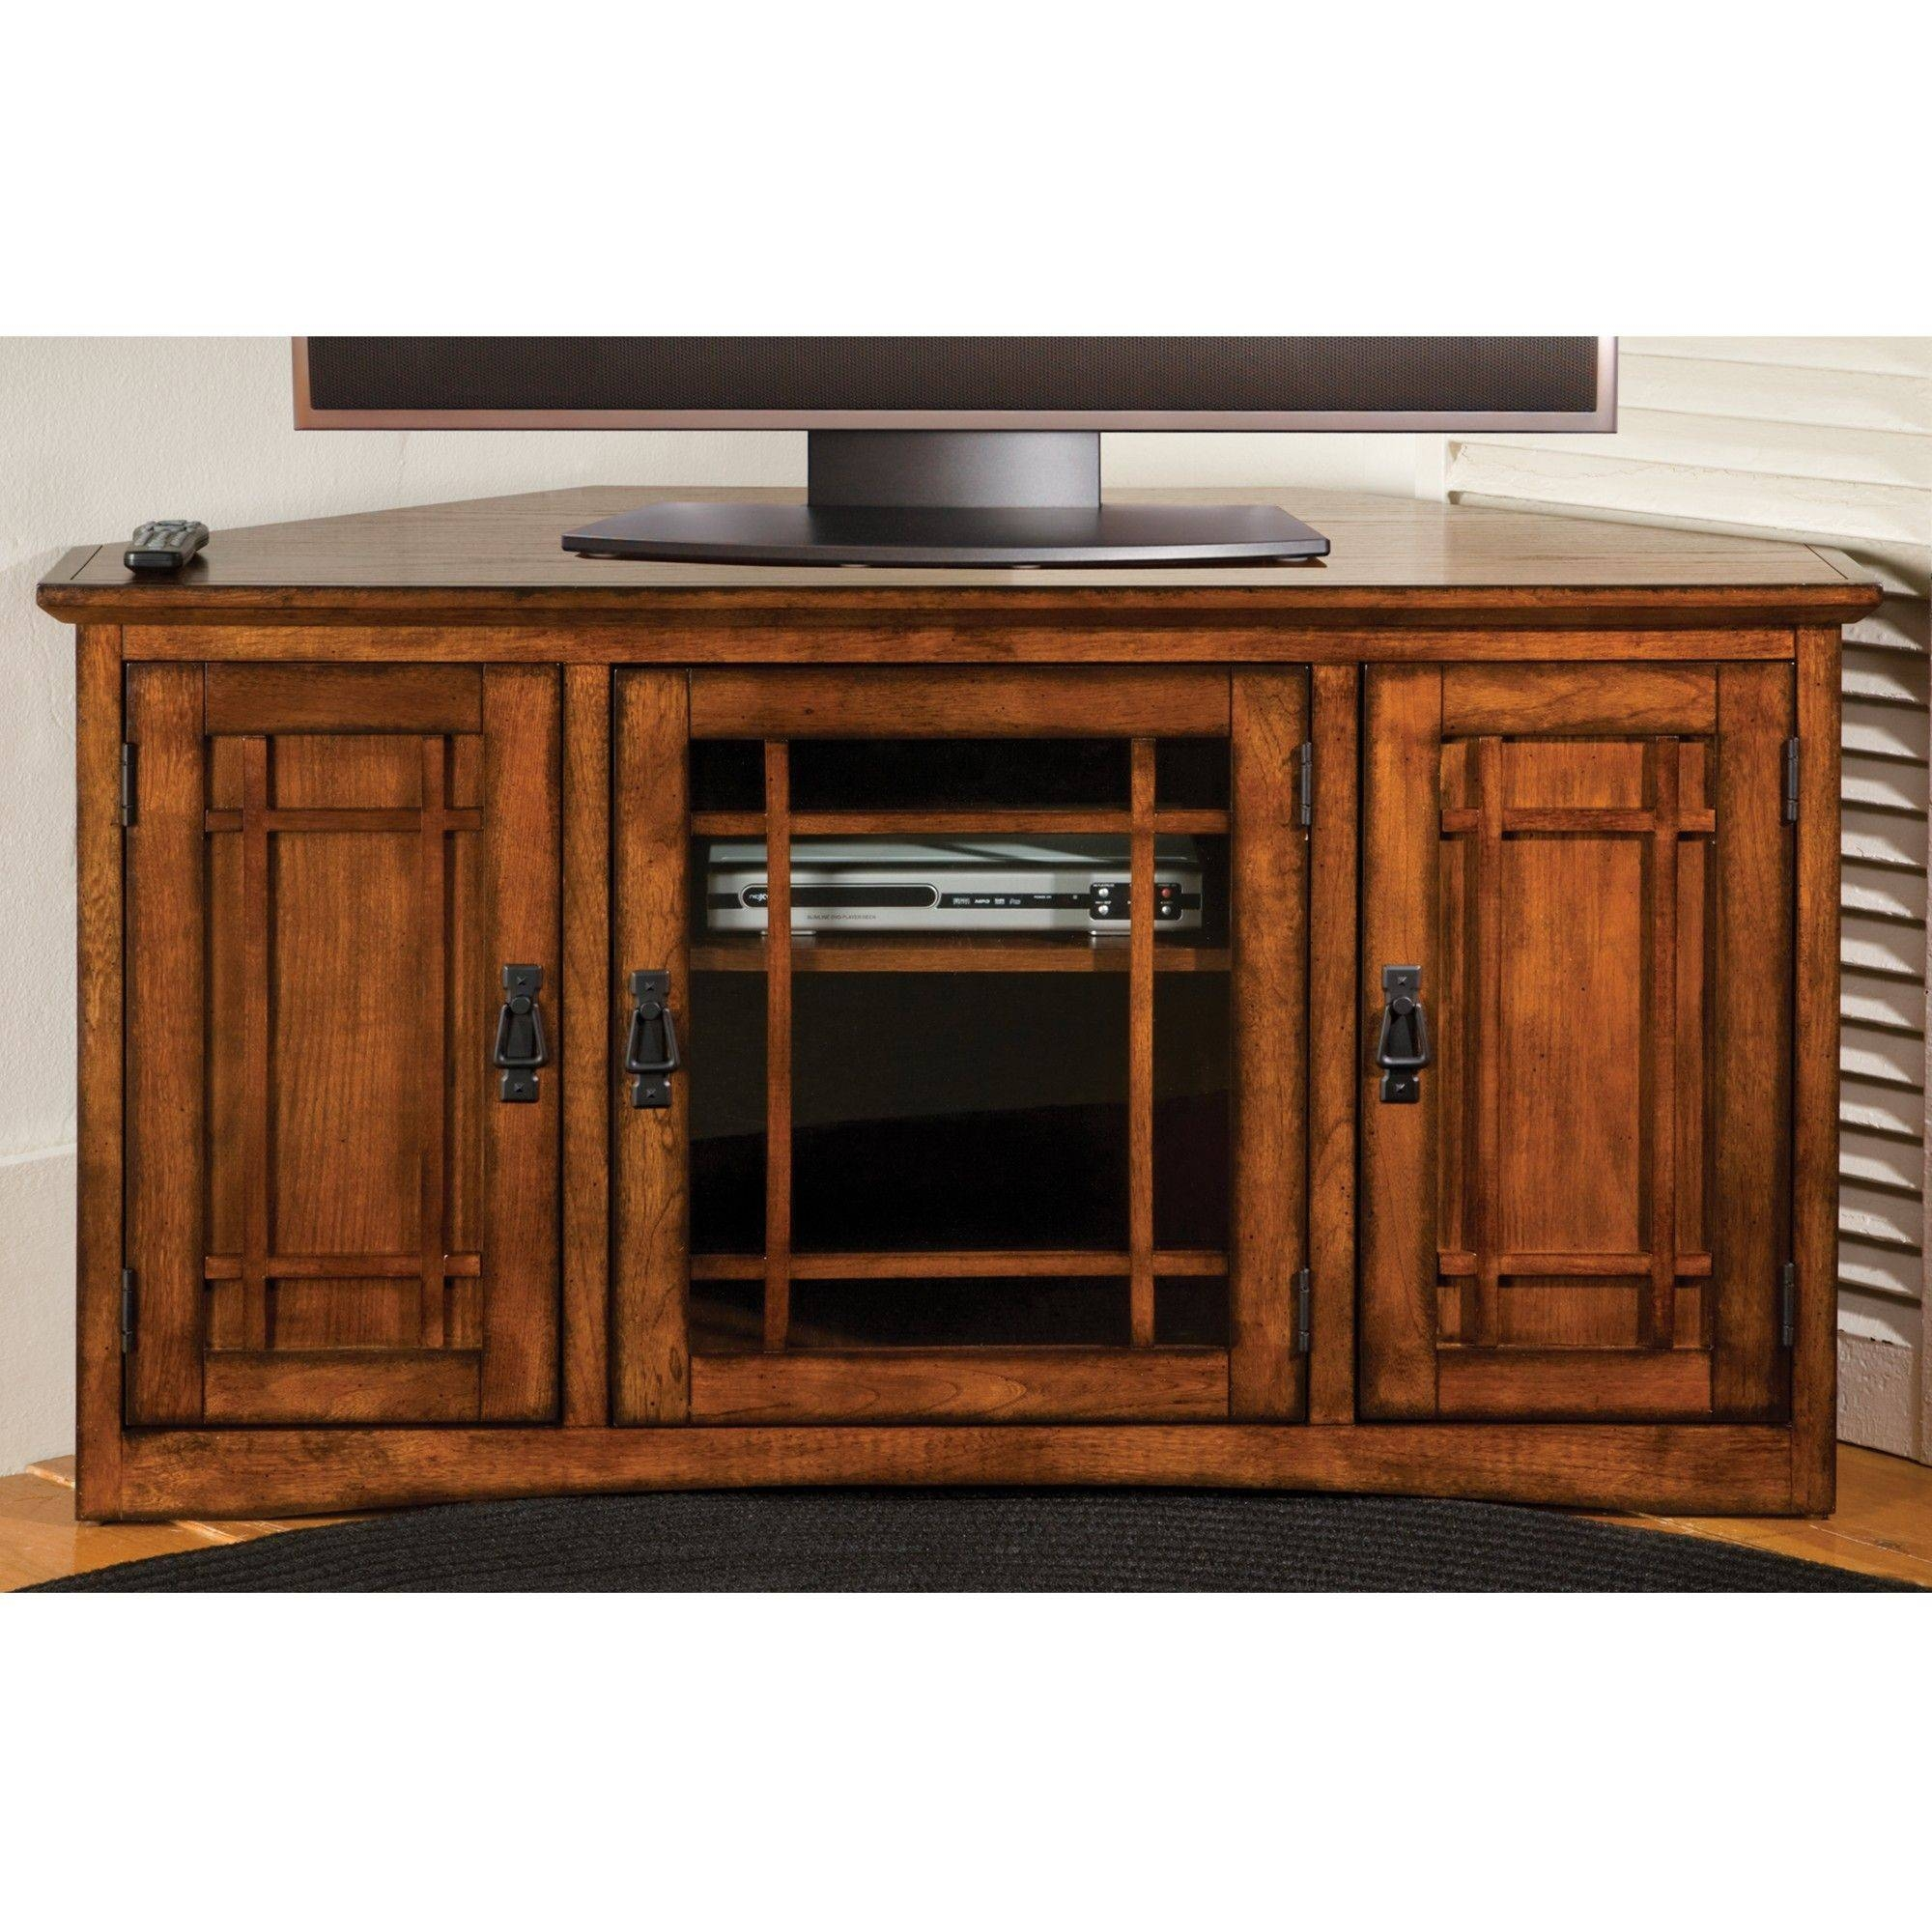 Wooden Corner Tv Cabinets For Flat Screens | Best Home Furniture within Corner Tv Cabinets for Flat Screen (Image 15 of 15)